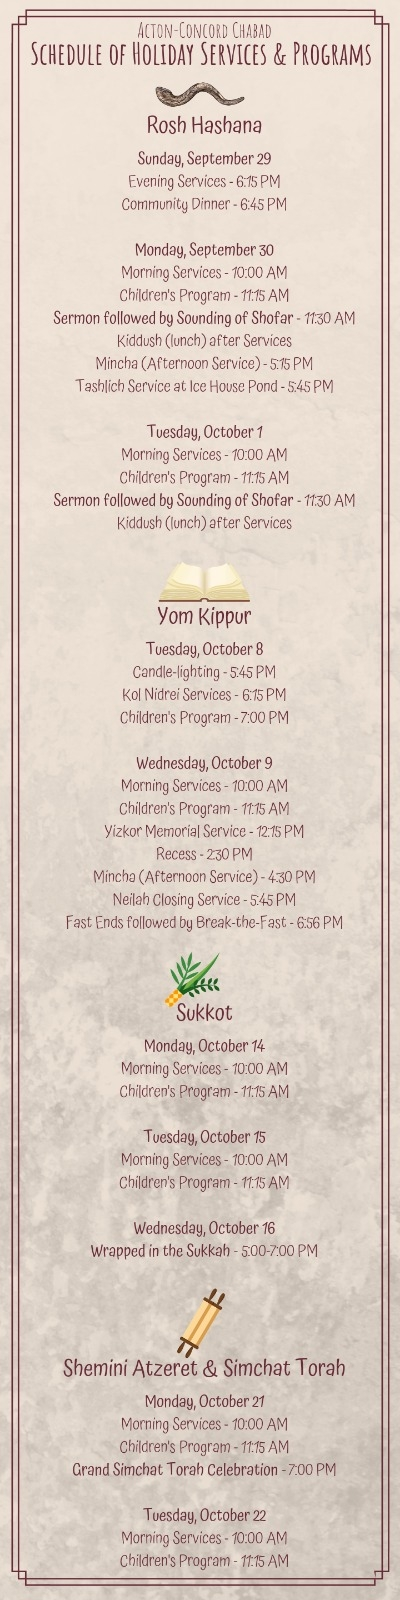 Schedule of Holiday Services & Programs 3.jpg